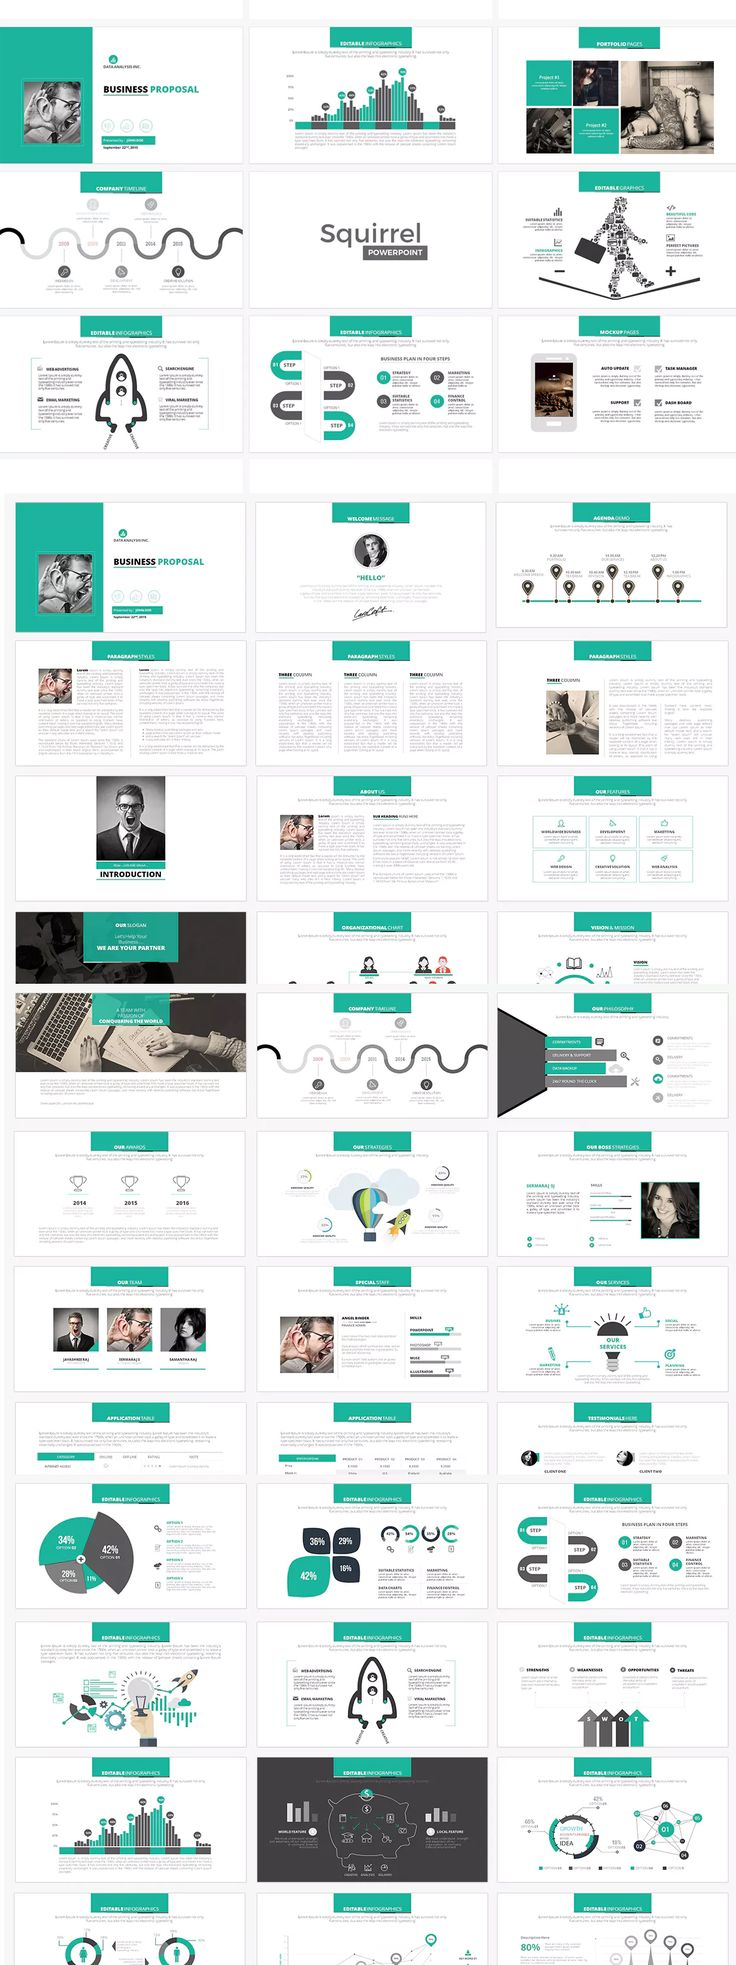 230 best powerpoint presentation templates images on pinterest squirrel powerpoint presentation template pronofoot35fo Image collections